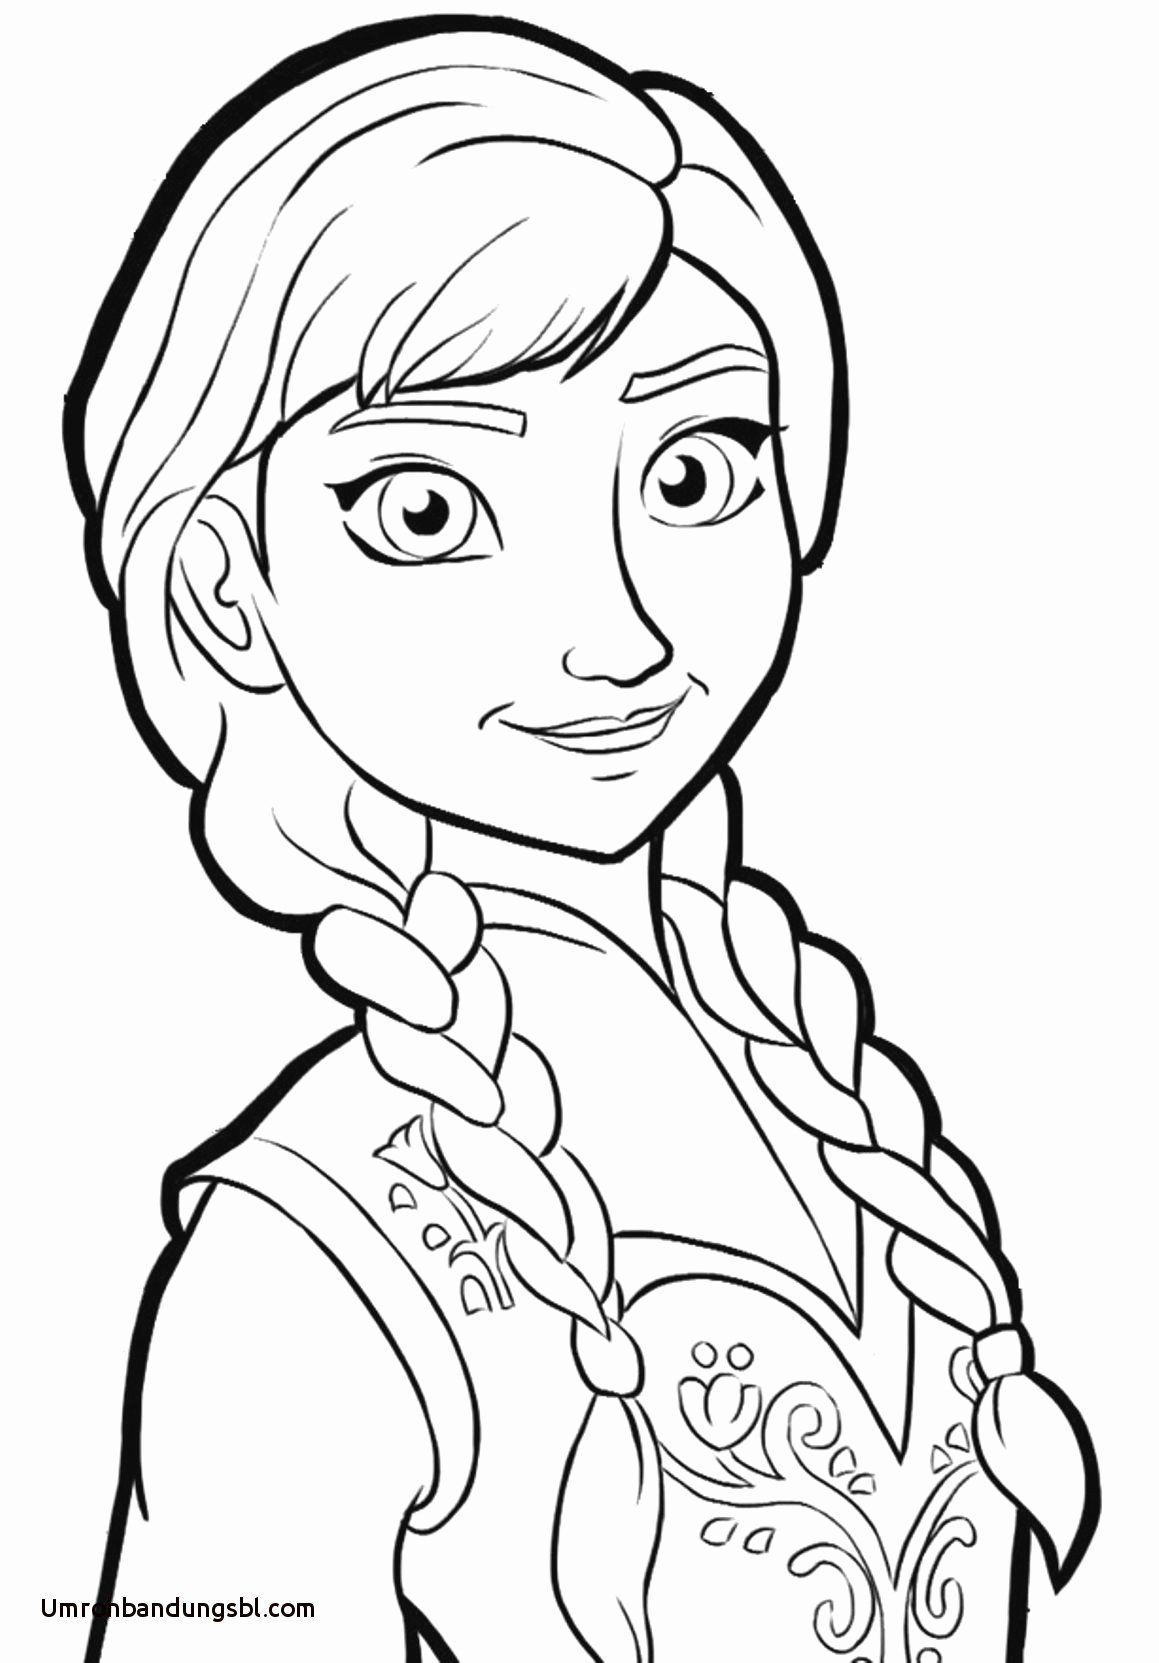 Print Frozen Coloring Pages Inspirational Awesome Elsa Fever Coloring Page Nocn Elsa Coloring Pages Frozen Coloring Frozen Coloring Pages